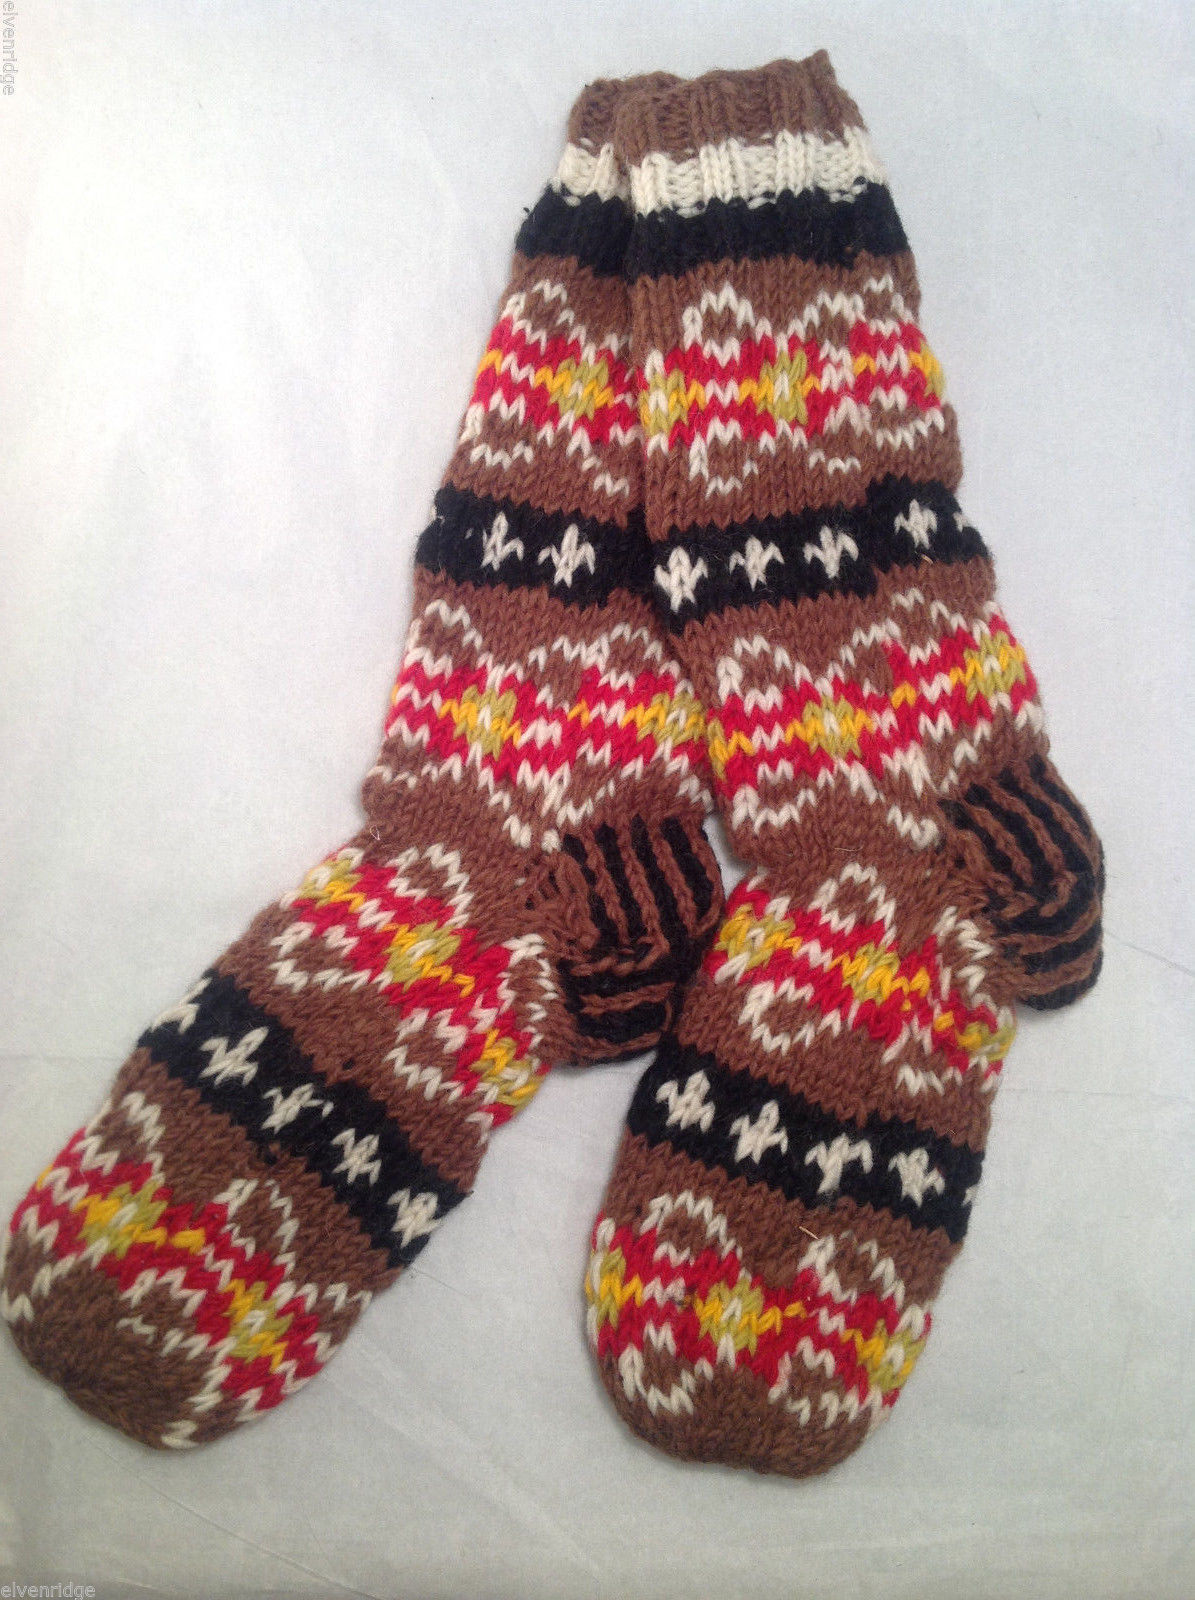 Socks Hand-Knit in Nepal Unisex Men Women Brown Red Black Patterned Colored